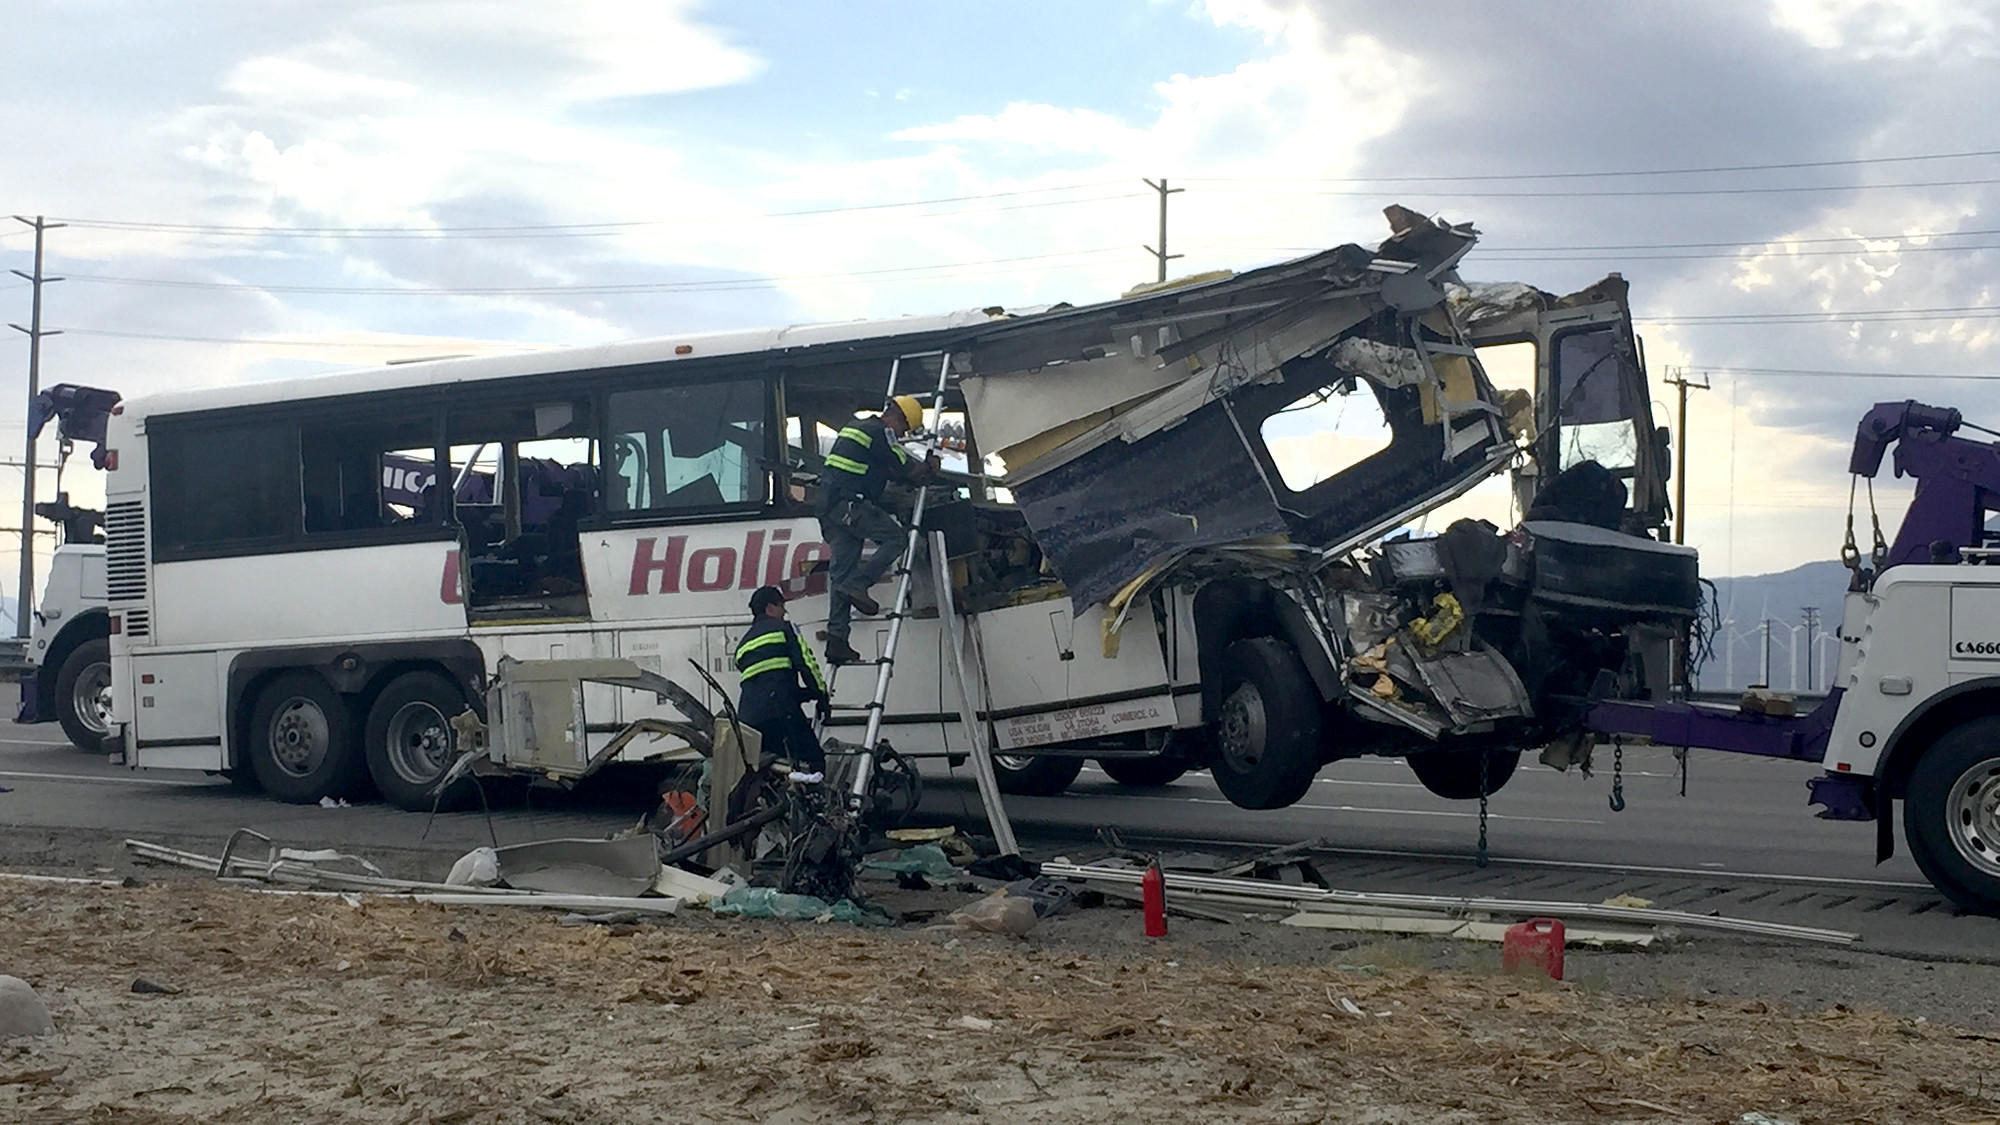 Live updates: 13 people killed in tour bus crash on 10